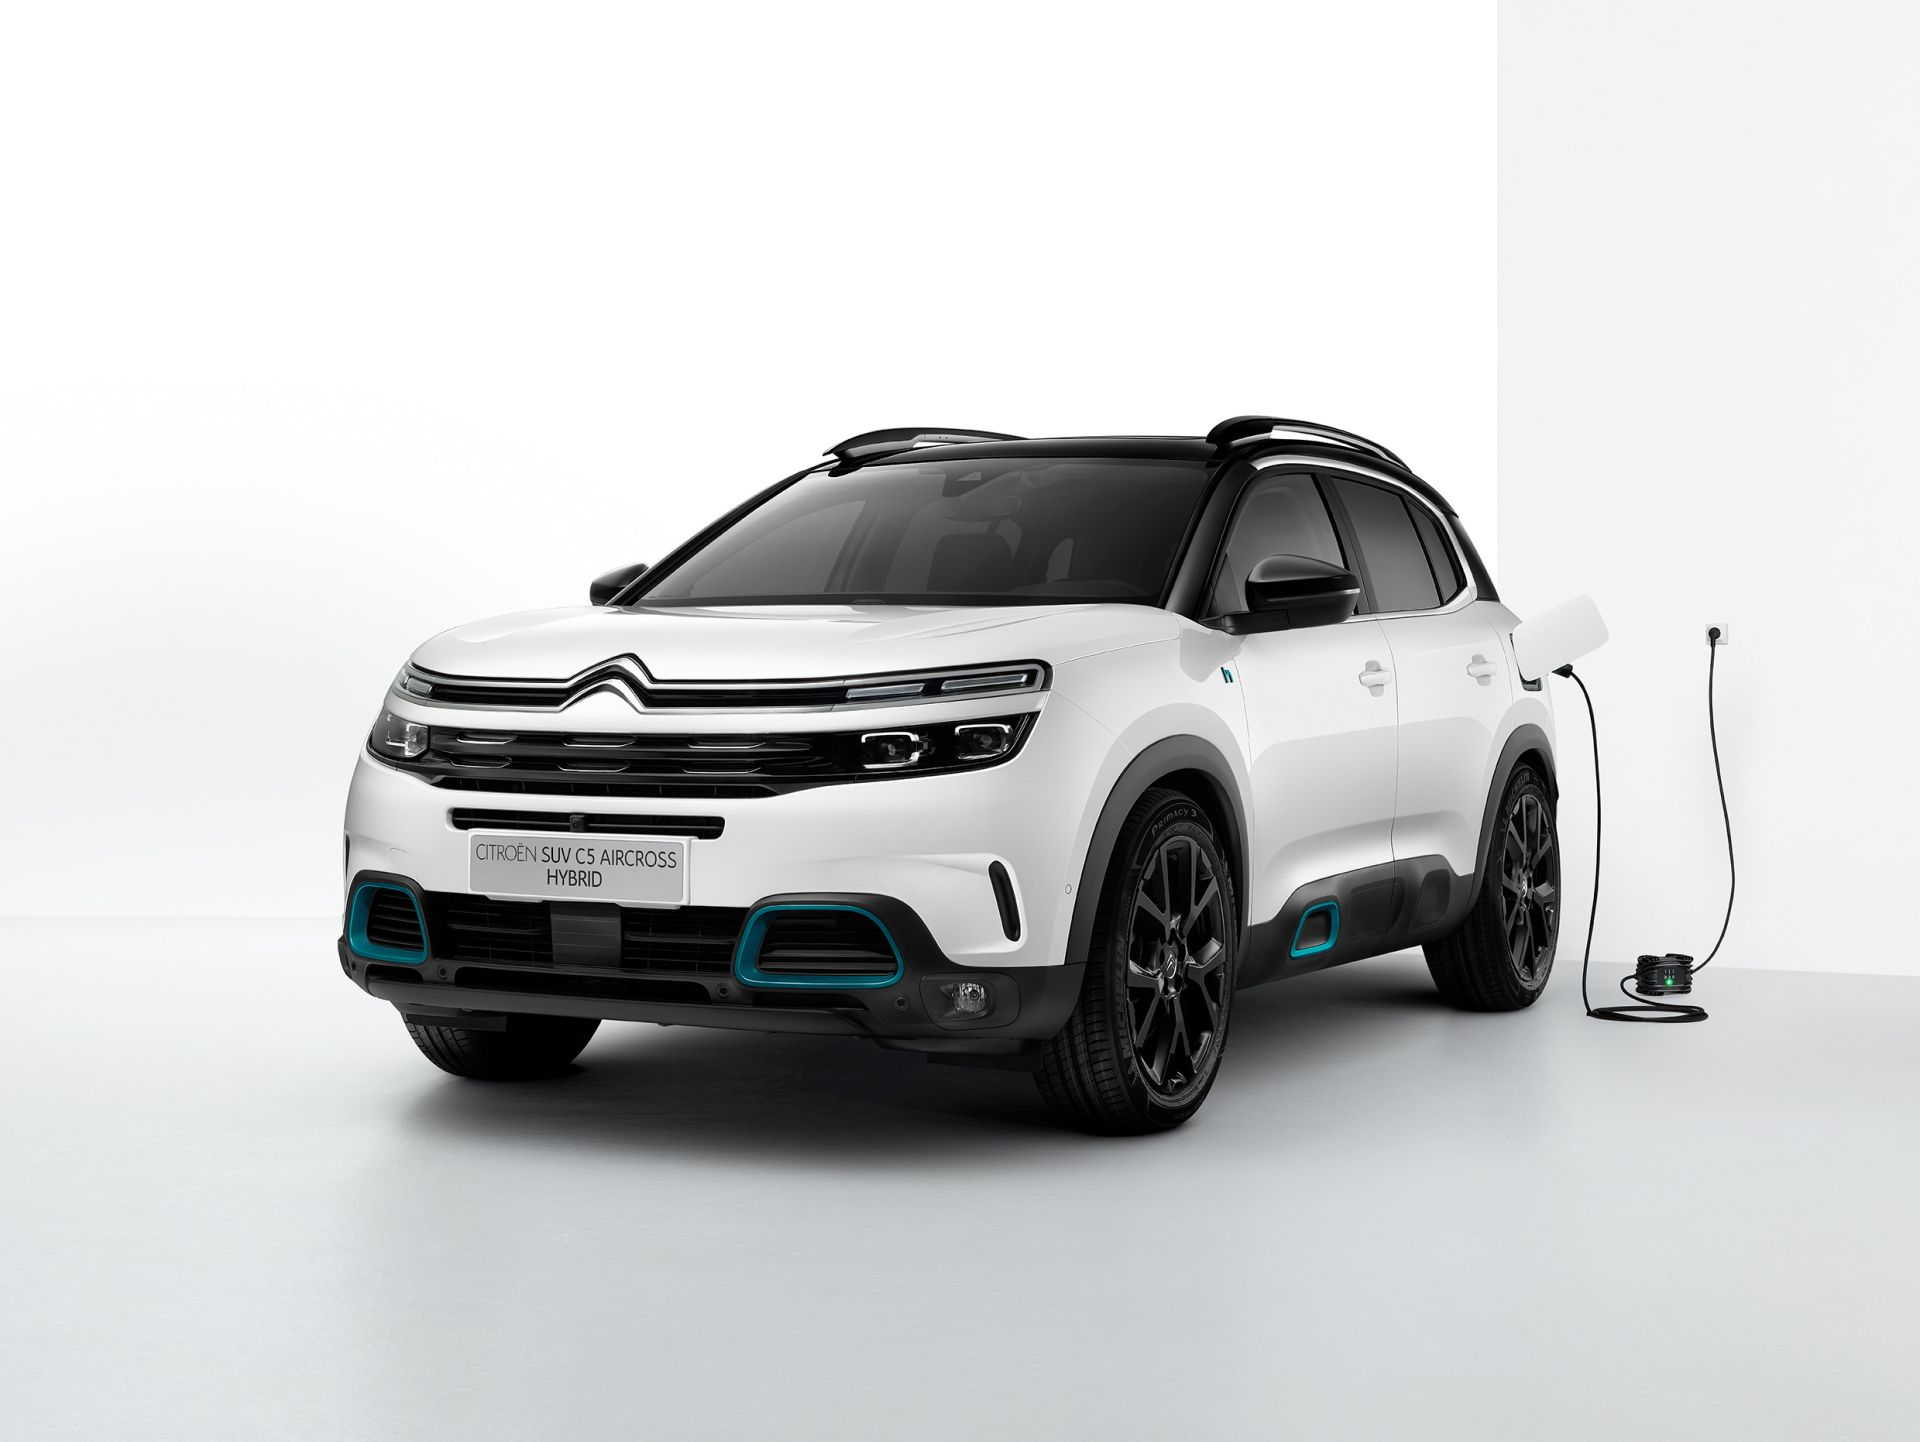 Citroën C5 Aircross Hybrid: An Electrified SUV